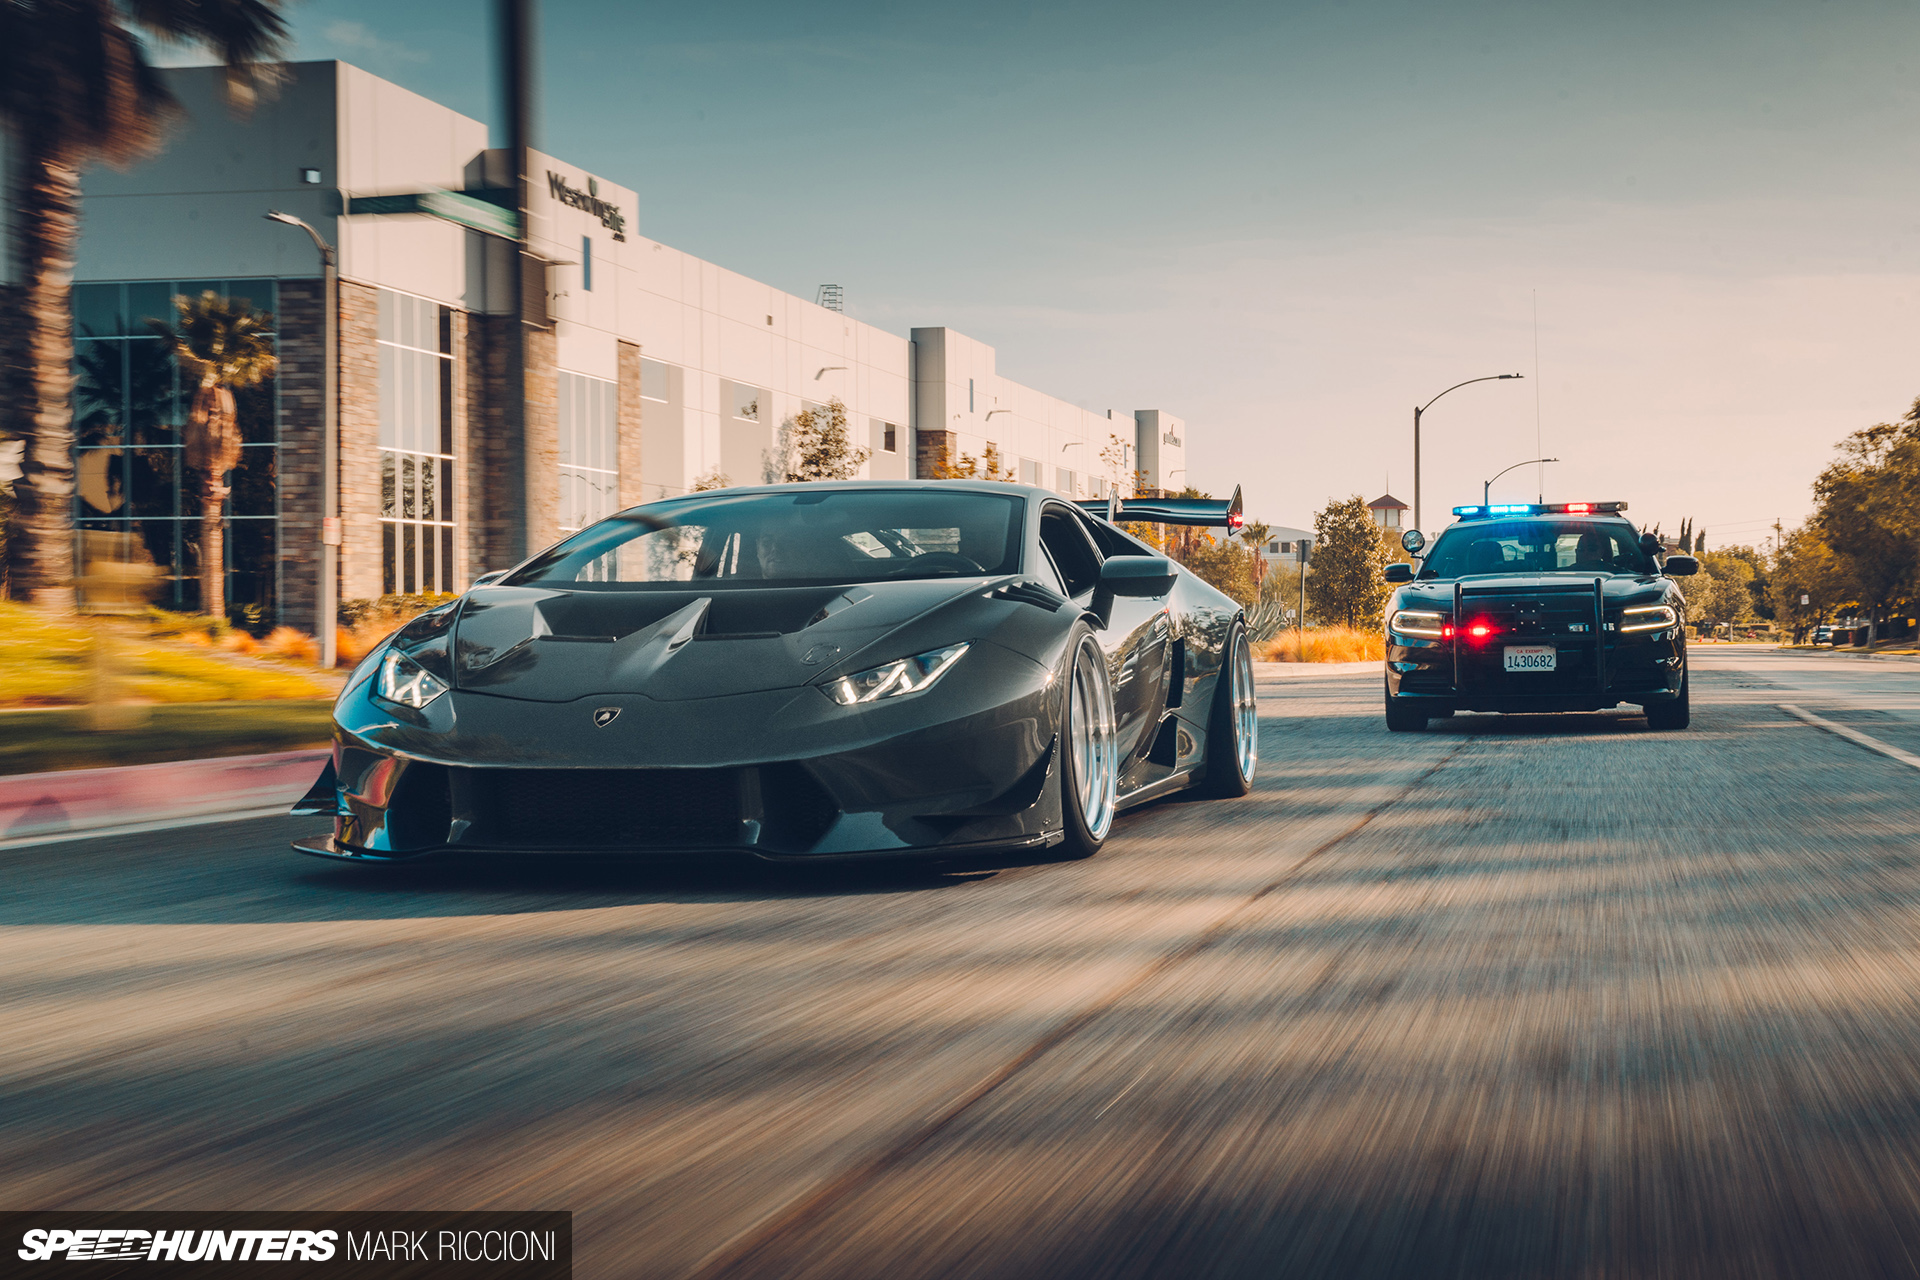 Drag Car 4k Wallpaper Chasing Extreme Dreams In A Twin Turbo Hurac 225 N Speedhunters